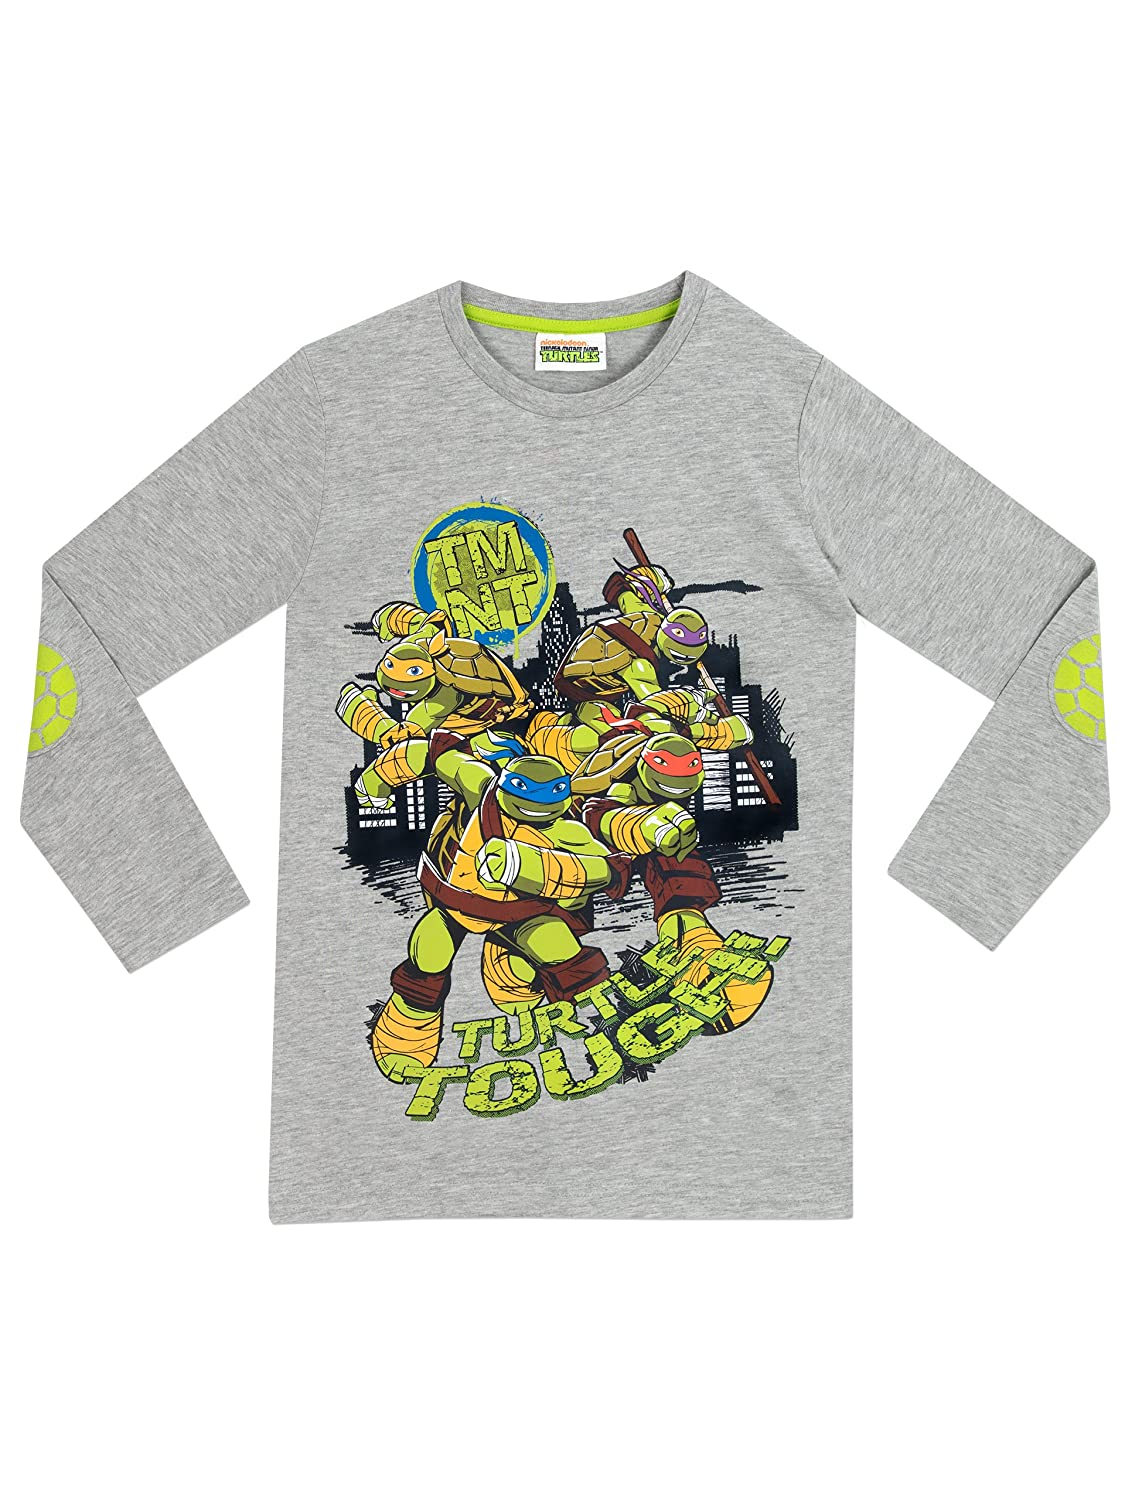 Teenage Mutant Ninja Turtles - Camiseta para niño - Las Tortugas Ninja - 12 - 18 Meses